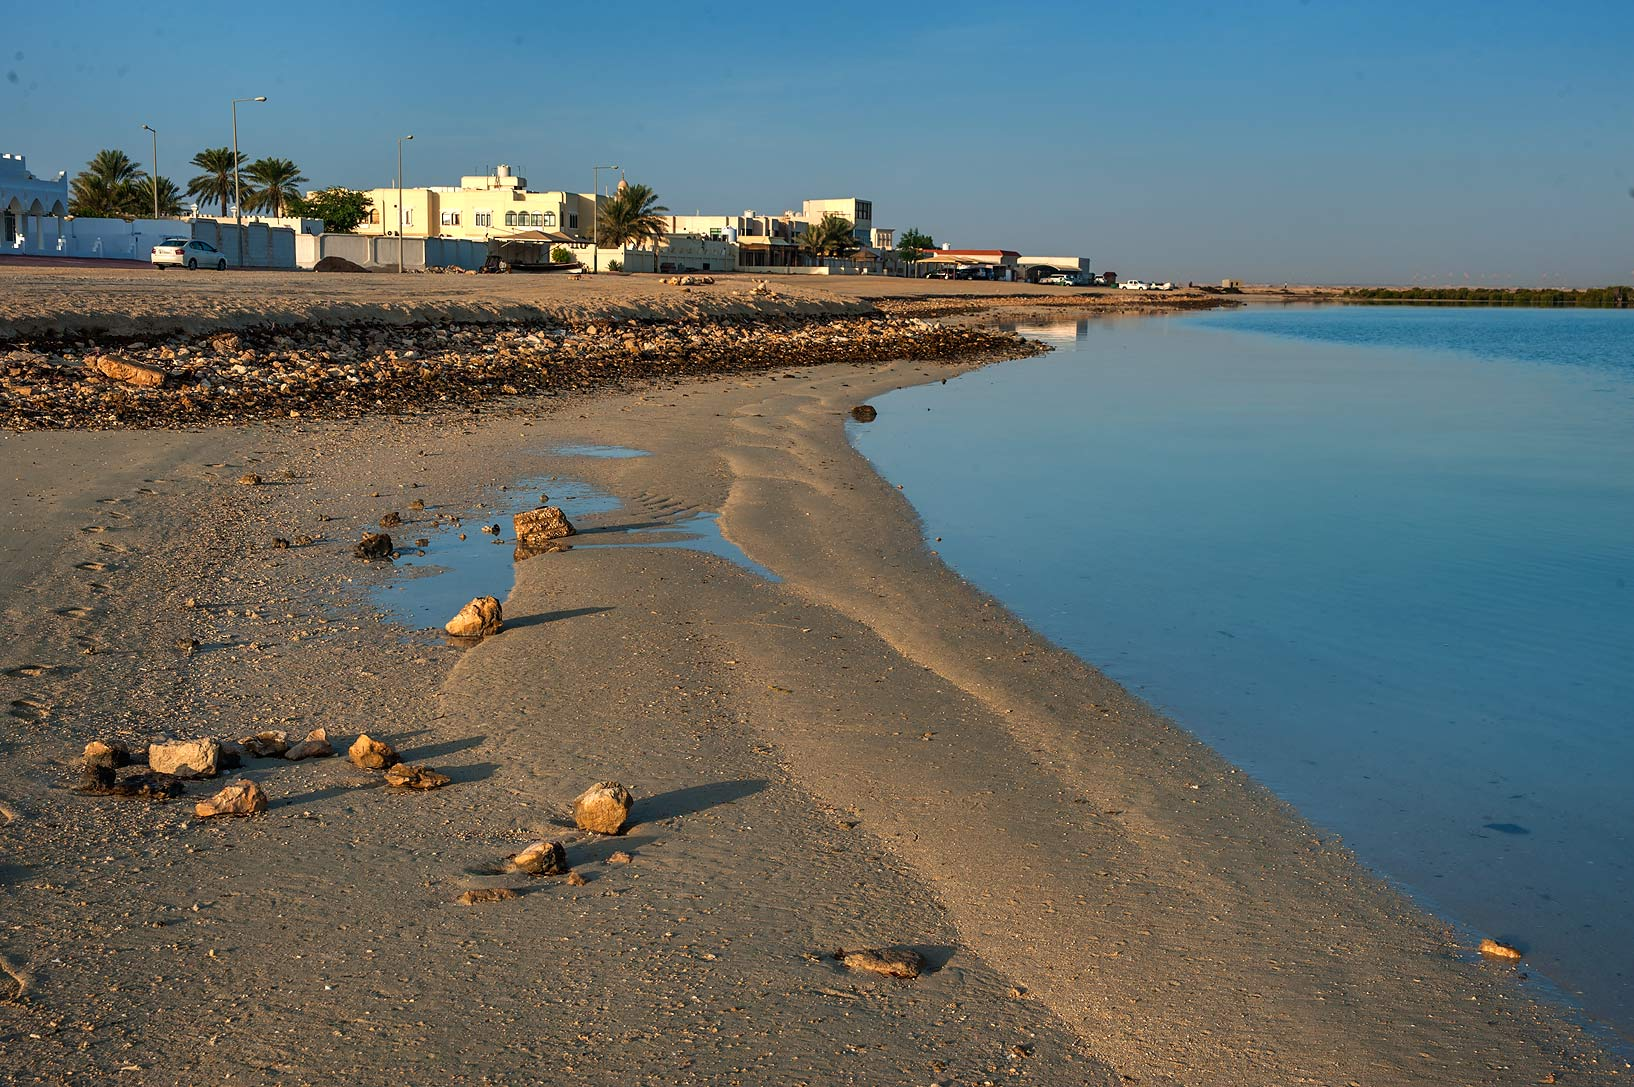 Beach in Al Thakira. North from Al Khor, Qatar